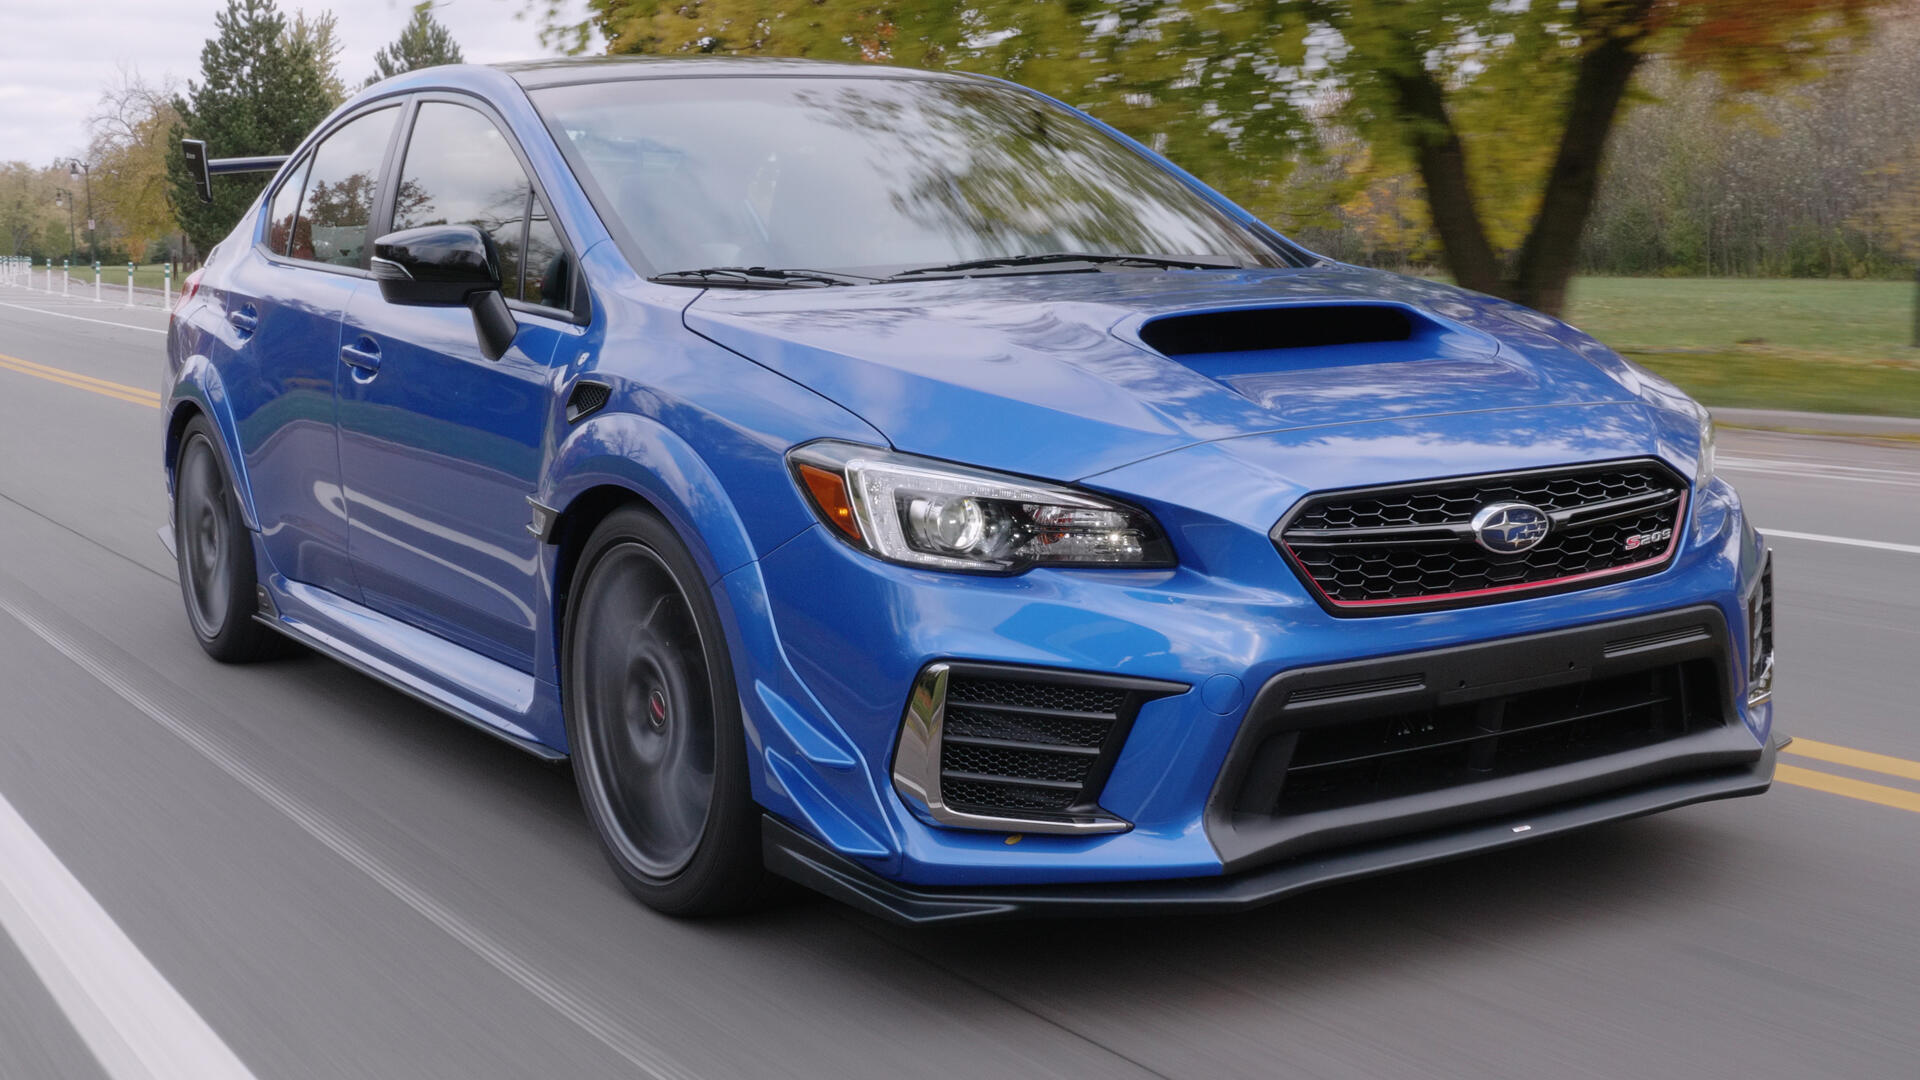 Video: 5 things you need to know about the 2019 Subaru WRX STI S209